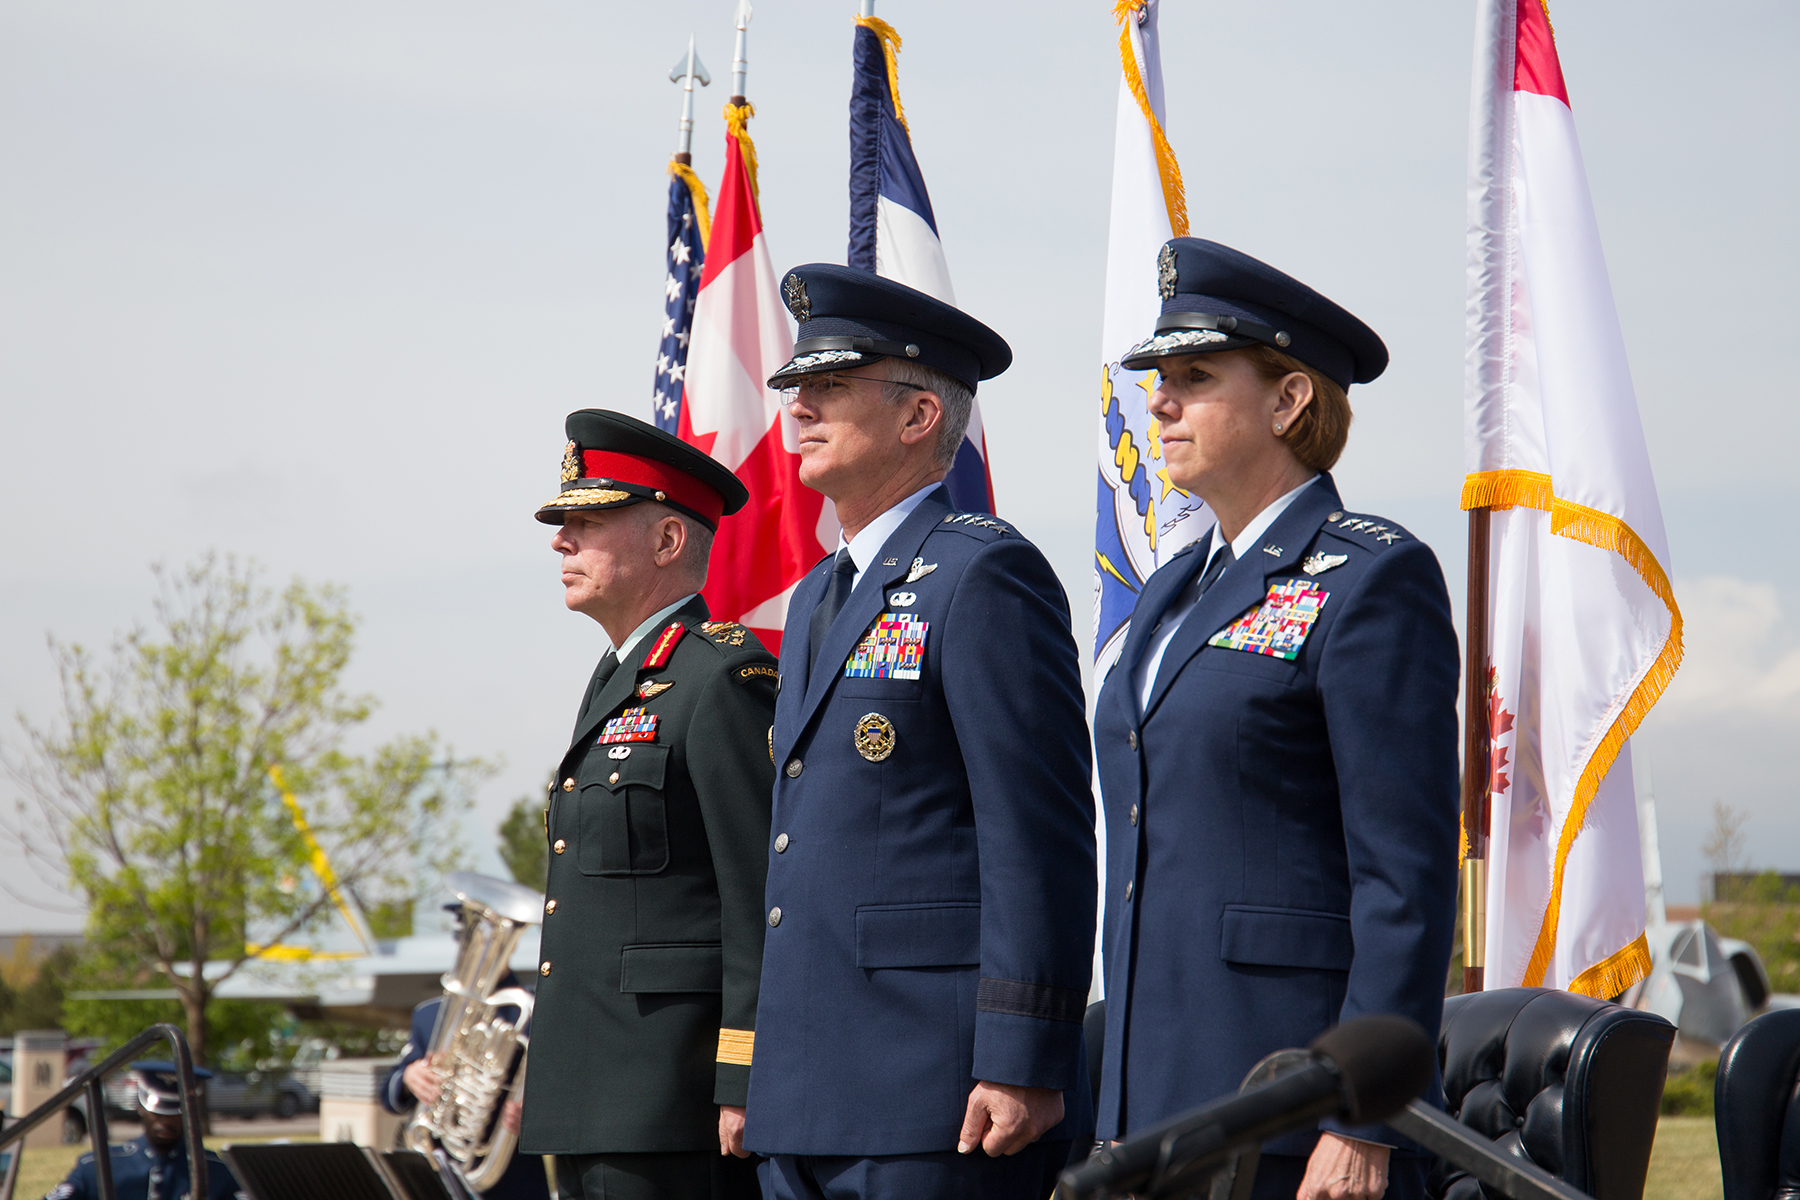 Canada's Chief of the Defence Staff, General Jonathan H. Vance (left), Vice Chairman of the Joint Chiefs of Staff U.S. Air Force General Paul J. Selva, and the Commander of the North American Aerospace Defense Command and U.S. Northern Command, U.S. Air Force General Lori Robinson, participate in the NORAD 60th Anniversary Ceremony on Peterson Air Force Base Colorado, on May 12, 2018. PHOTO: U.S. DoD, Jhomil Bansil